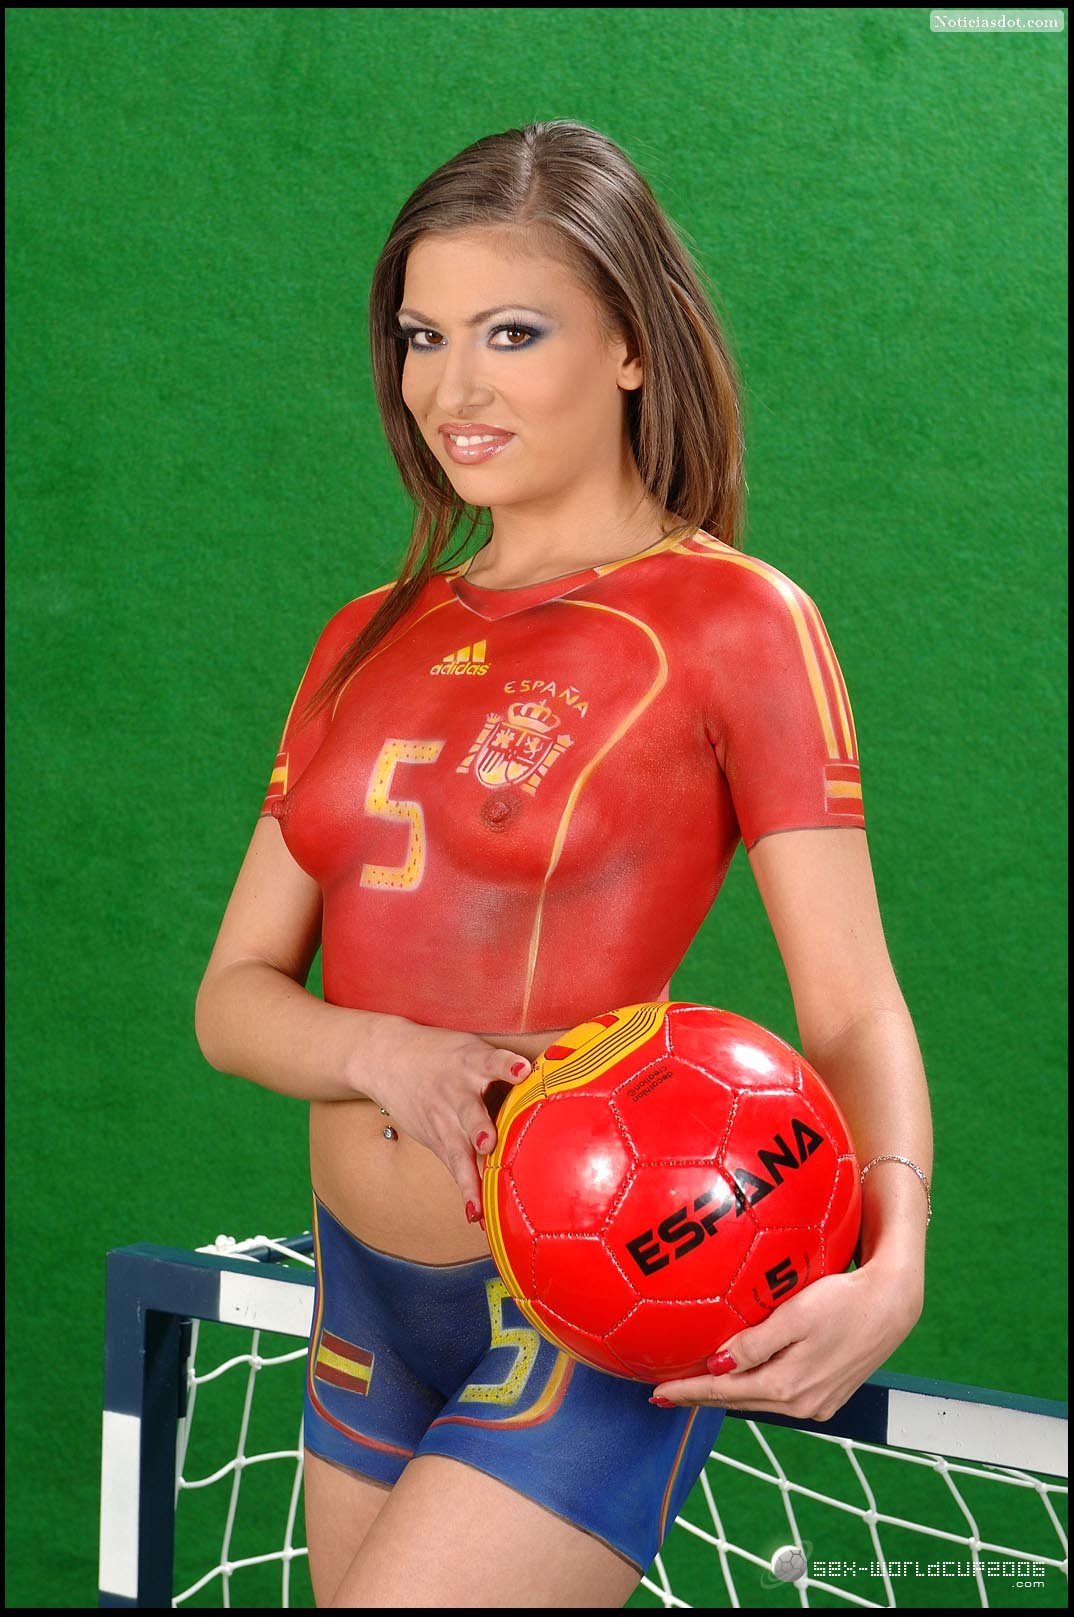 Worldcup Bodypaint Images Wallpaper And Free Download